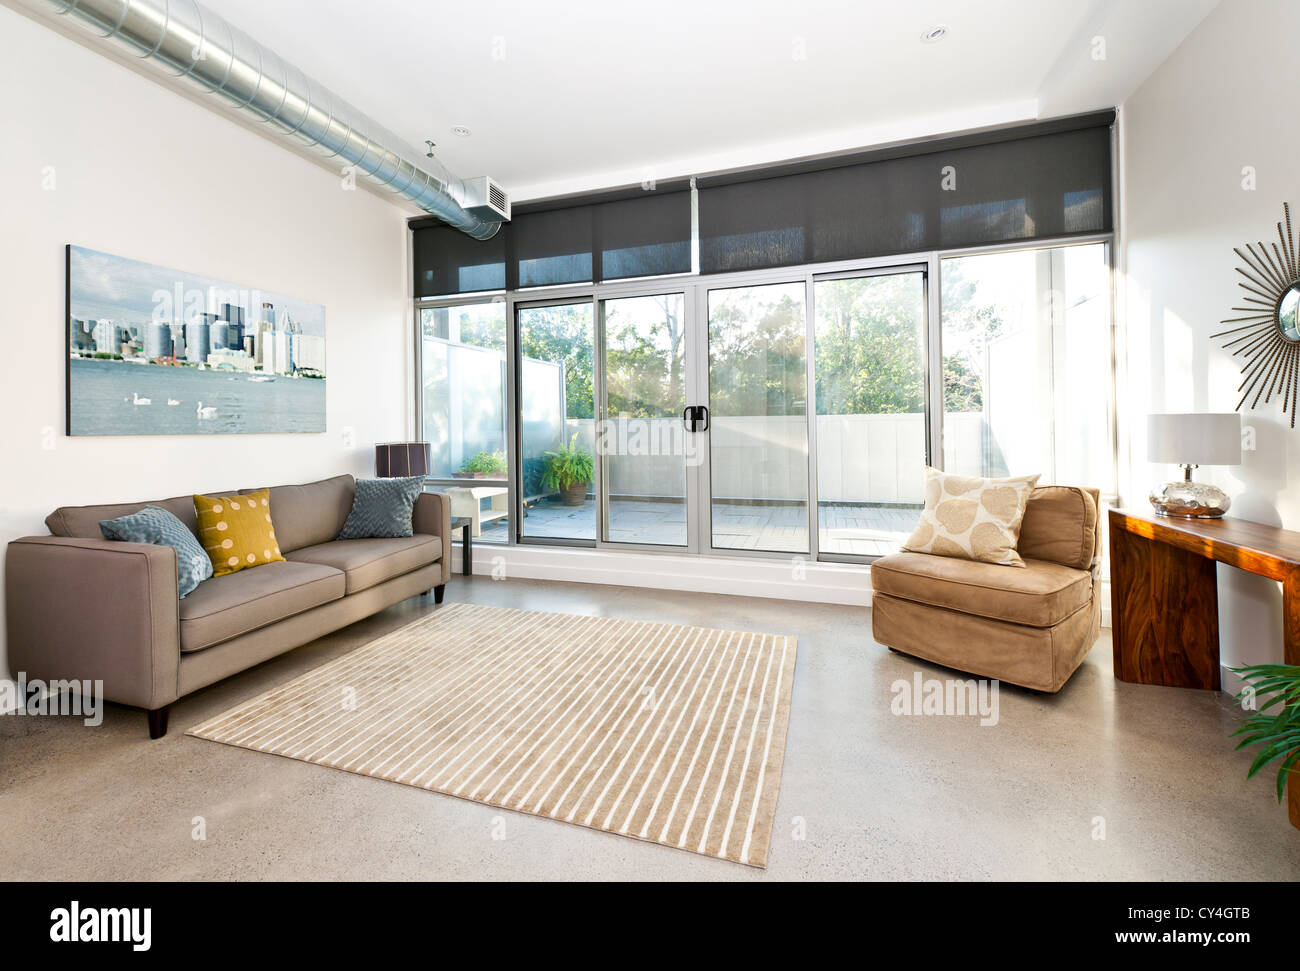 Living Room With Sliding Glass Door To Balcony Artwork From Stock Photo Alamy